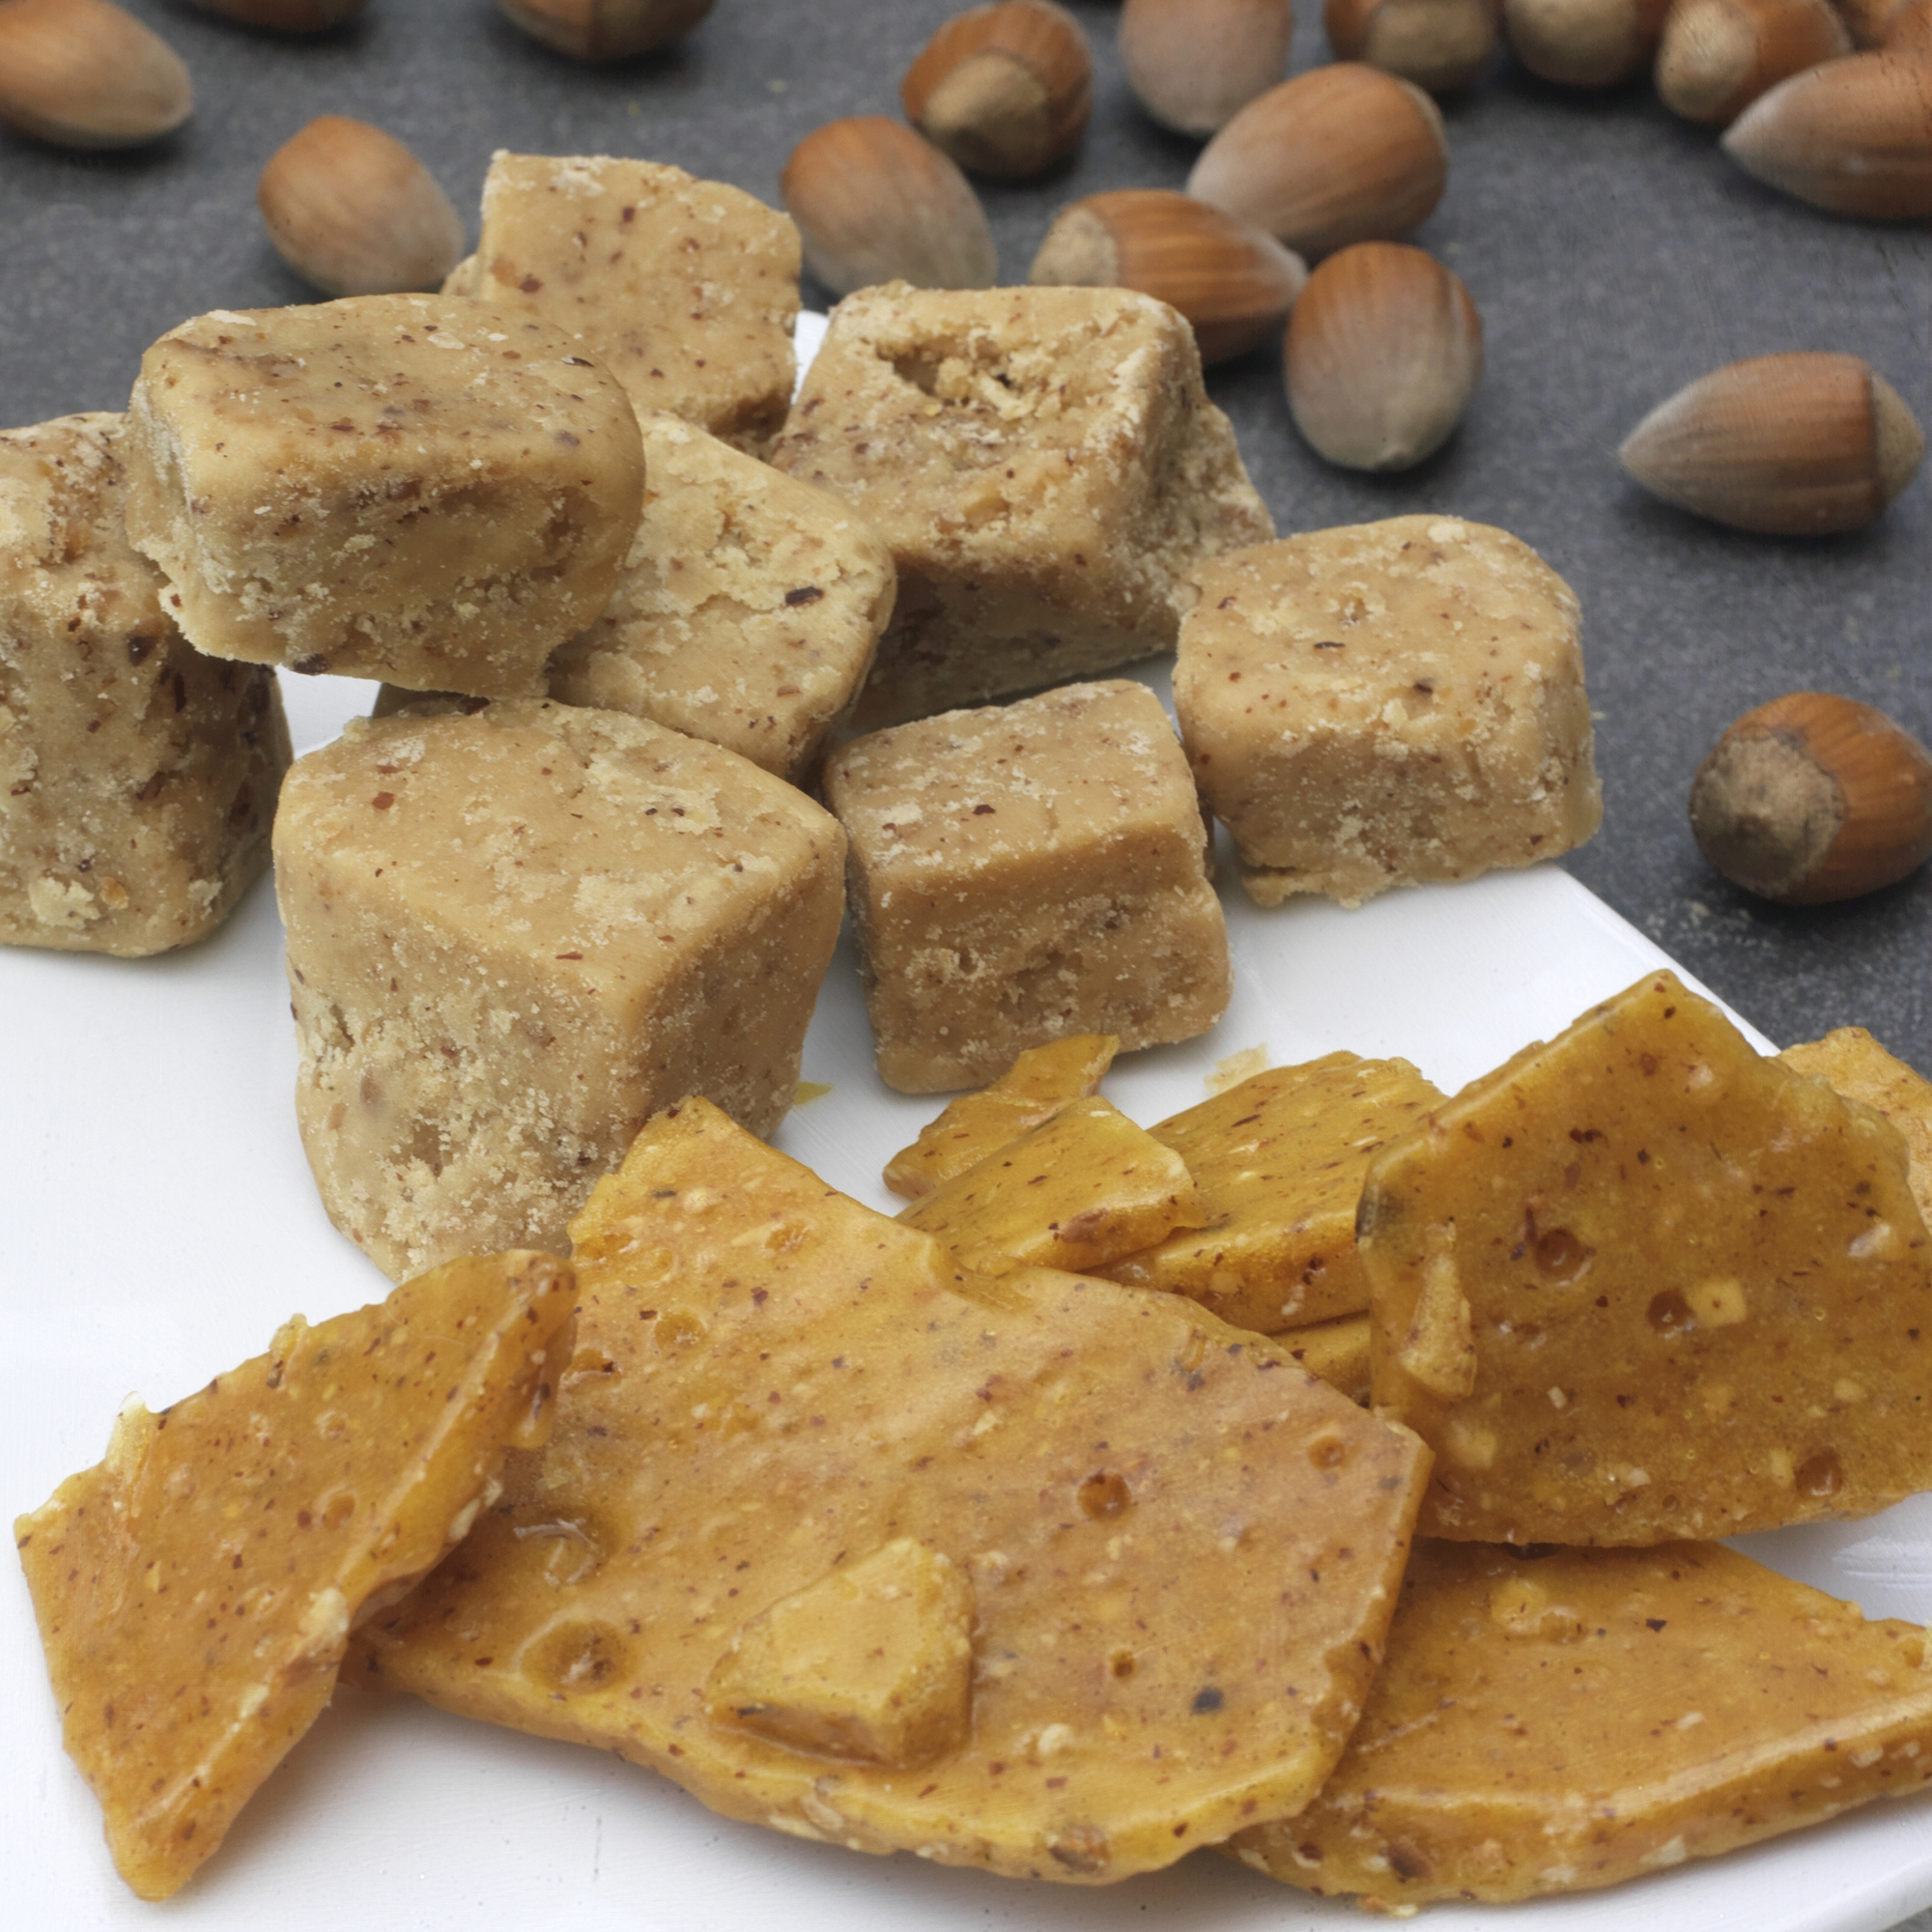 Sensationally Sticky! - Our fudges, brittles, and chocolates make the perfect treat...